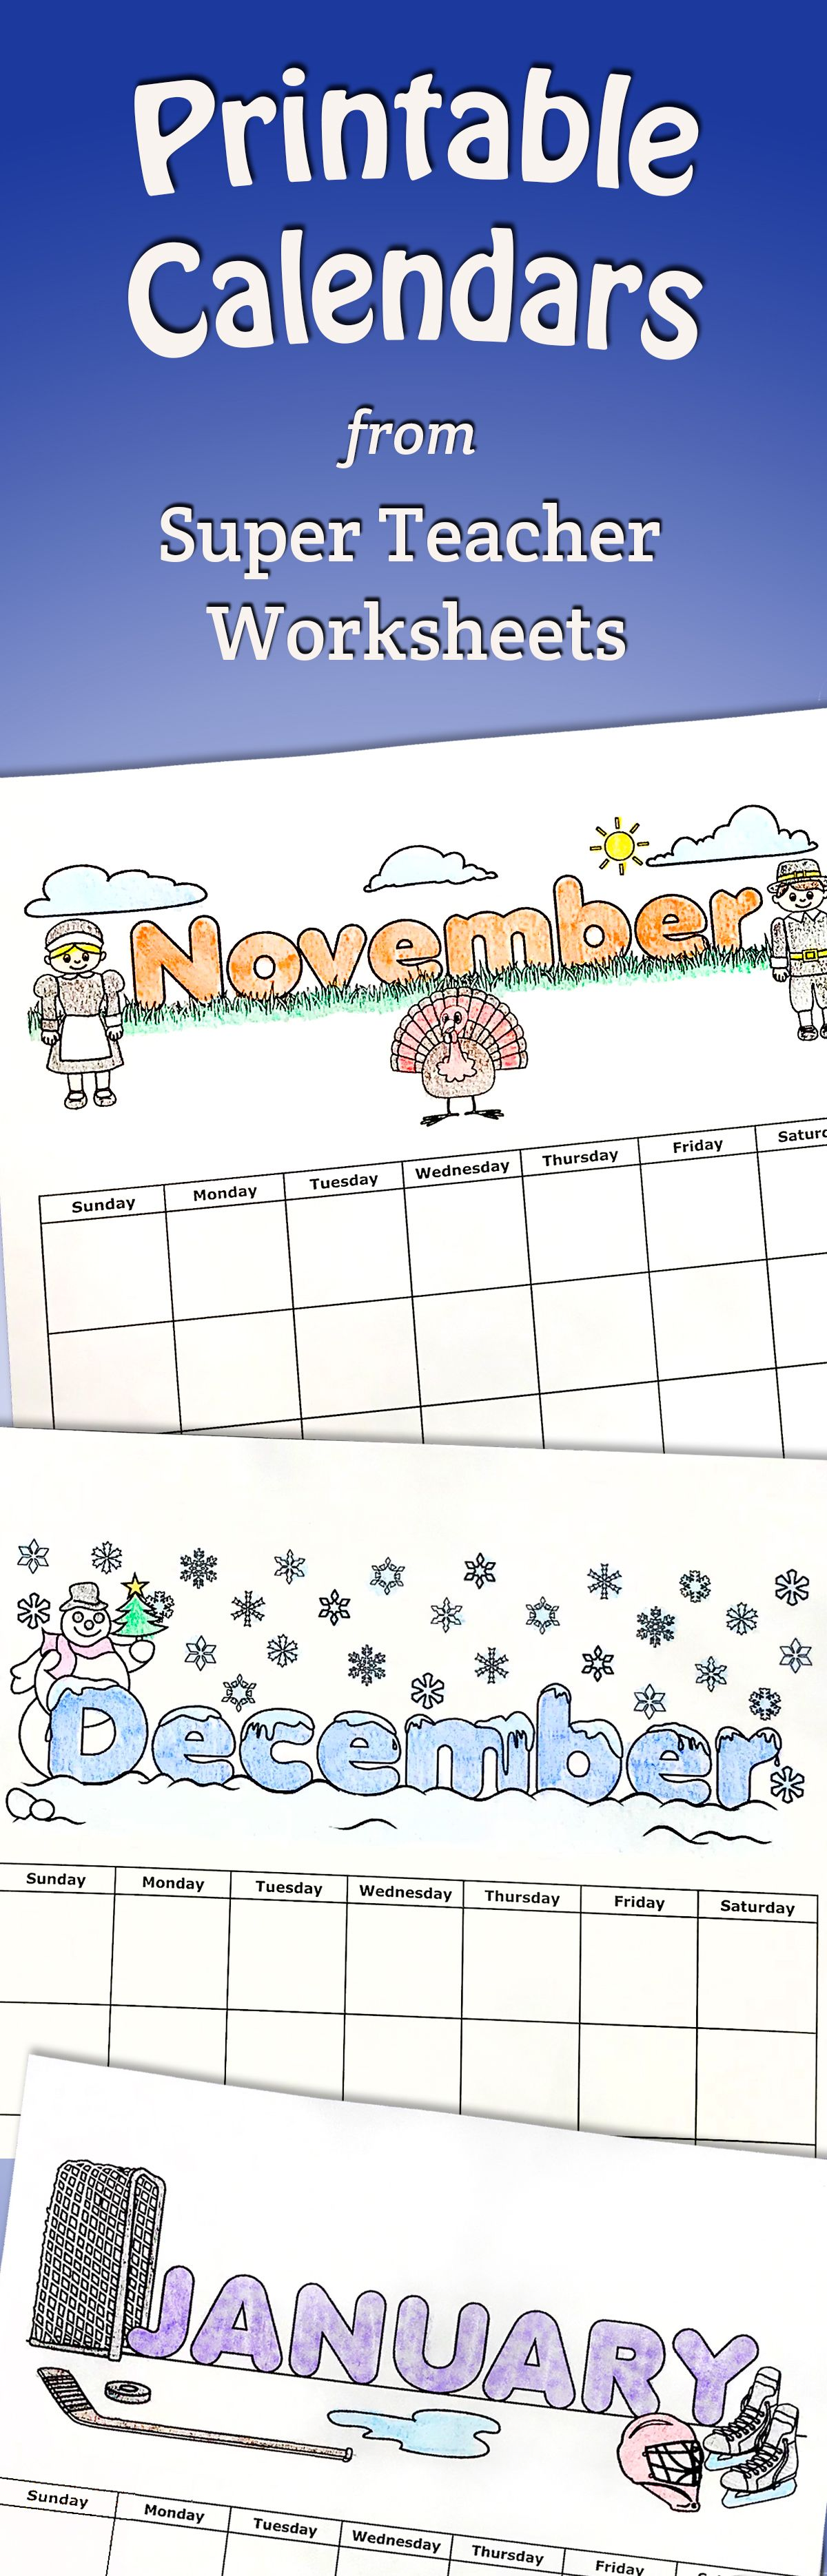 Print Out Monthly Calendars From Superteacherworksheets